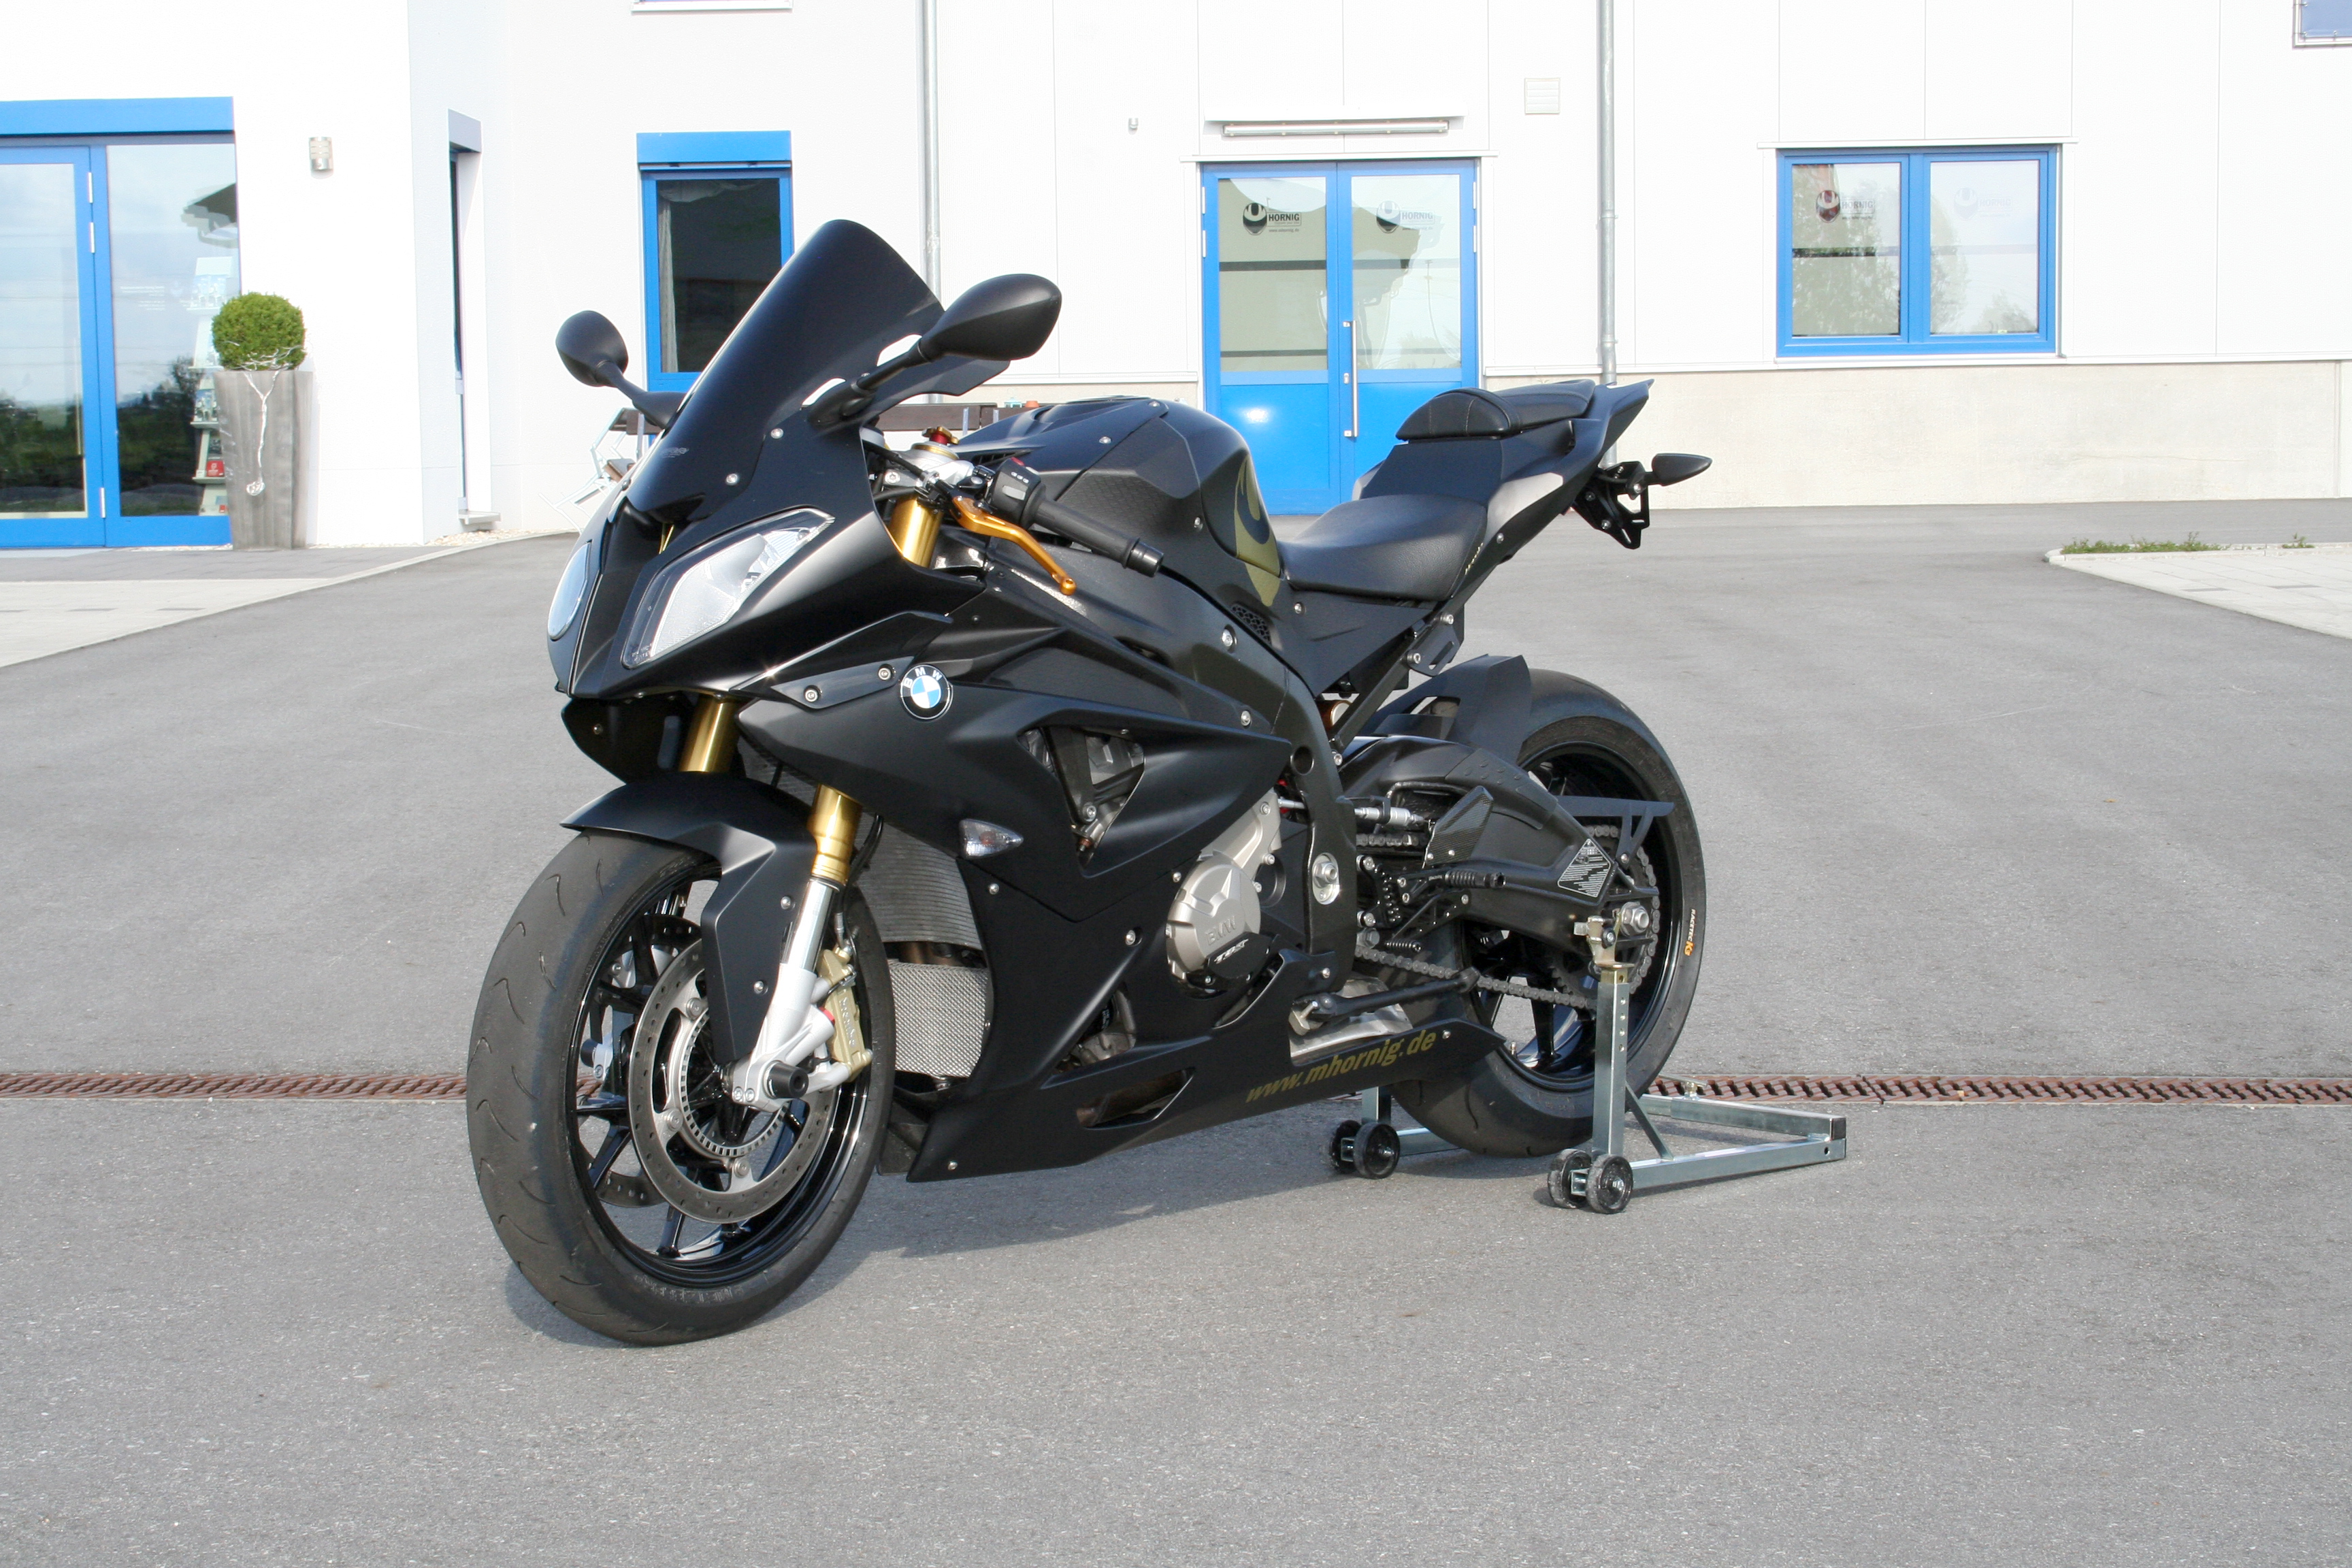 Hornig Conversion Bmw S1000rr Facelift In Matt Black Motorcycle Accessory Hornig Parts For Your Bmw Motorrad